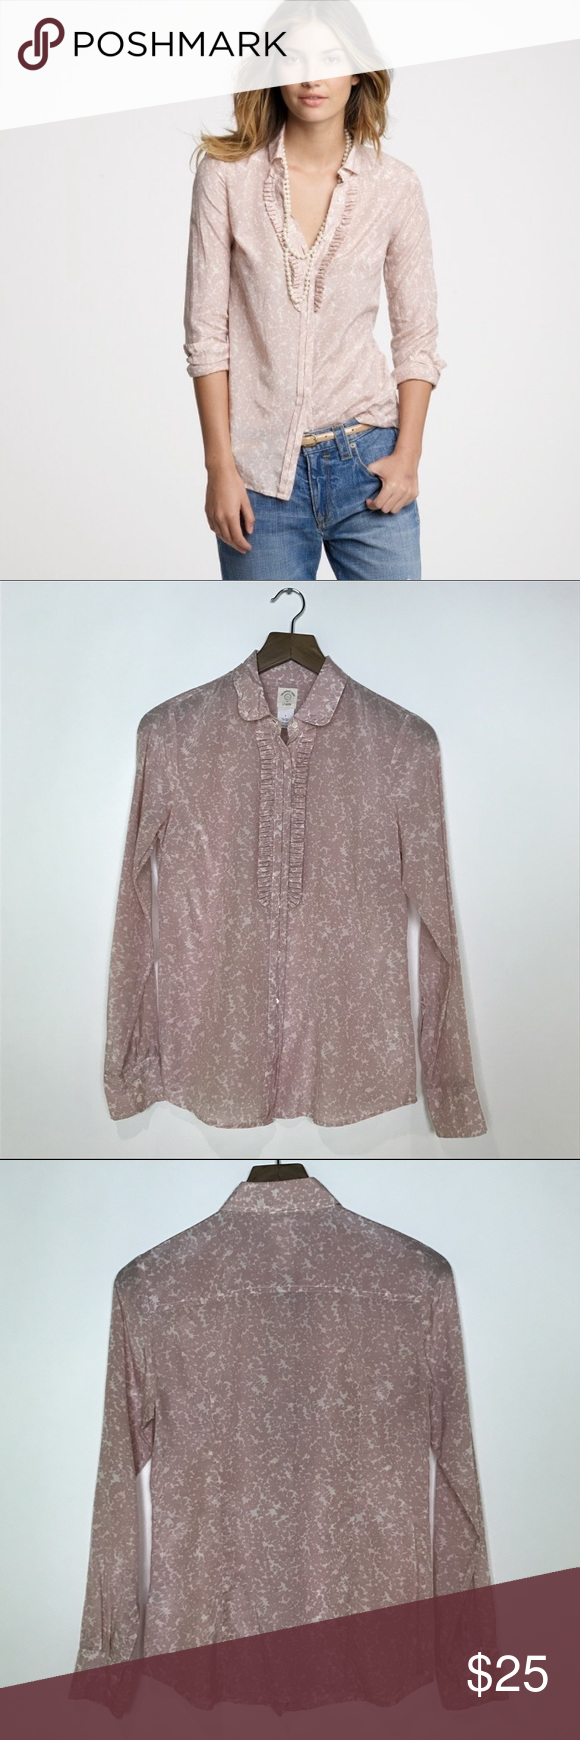 """[J Crew] Ruffle Front Vine Print Perfect Shirt Top Classic J. Crew button down perfect shirt. Long sleeves with button cuffs. Ruffle detail down front. Pretty allover pink vine print. Lightweight cotton and silk blend. Style 17483.  🔹Fabric: 57% Cotton 43% Silk 🔹Bust: 36"""" 🔹Length: 25"""" 🔹Condition: Excellent pre-owned condition.     *B36 J. Crew Tops Button Down Shirts"""